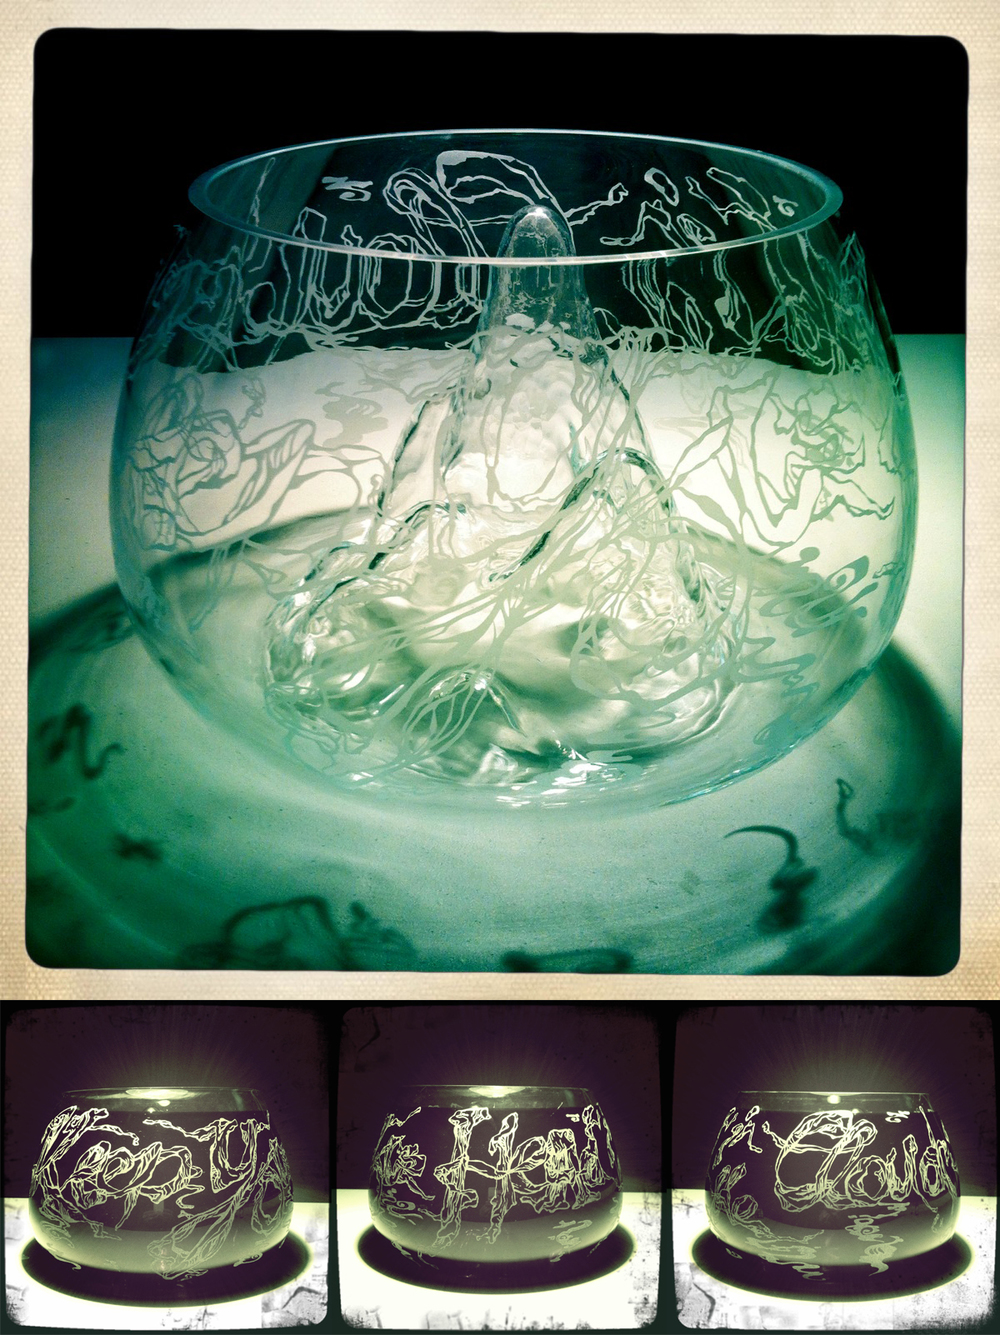 'Keep Your Head in the Clouds', Hand cut and etched glass vase with internal landscape, 320 x 200m, 3/3, 2014